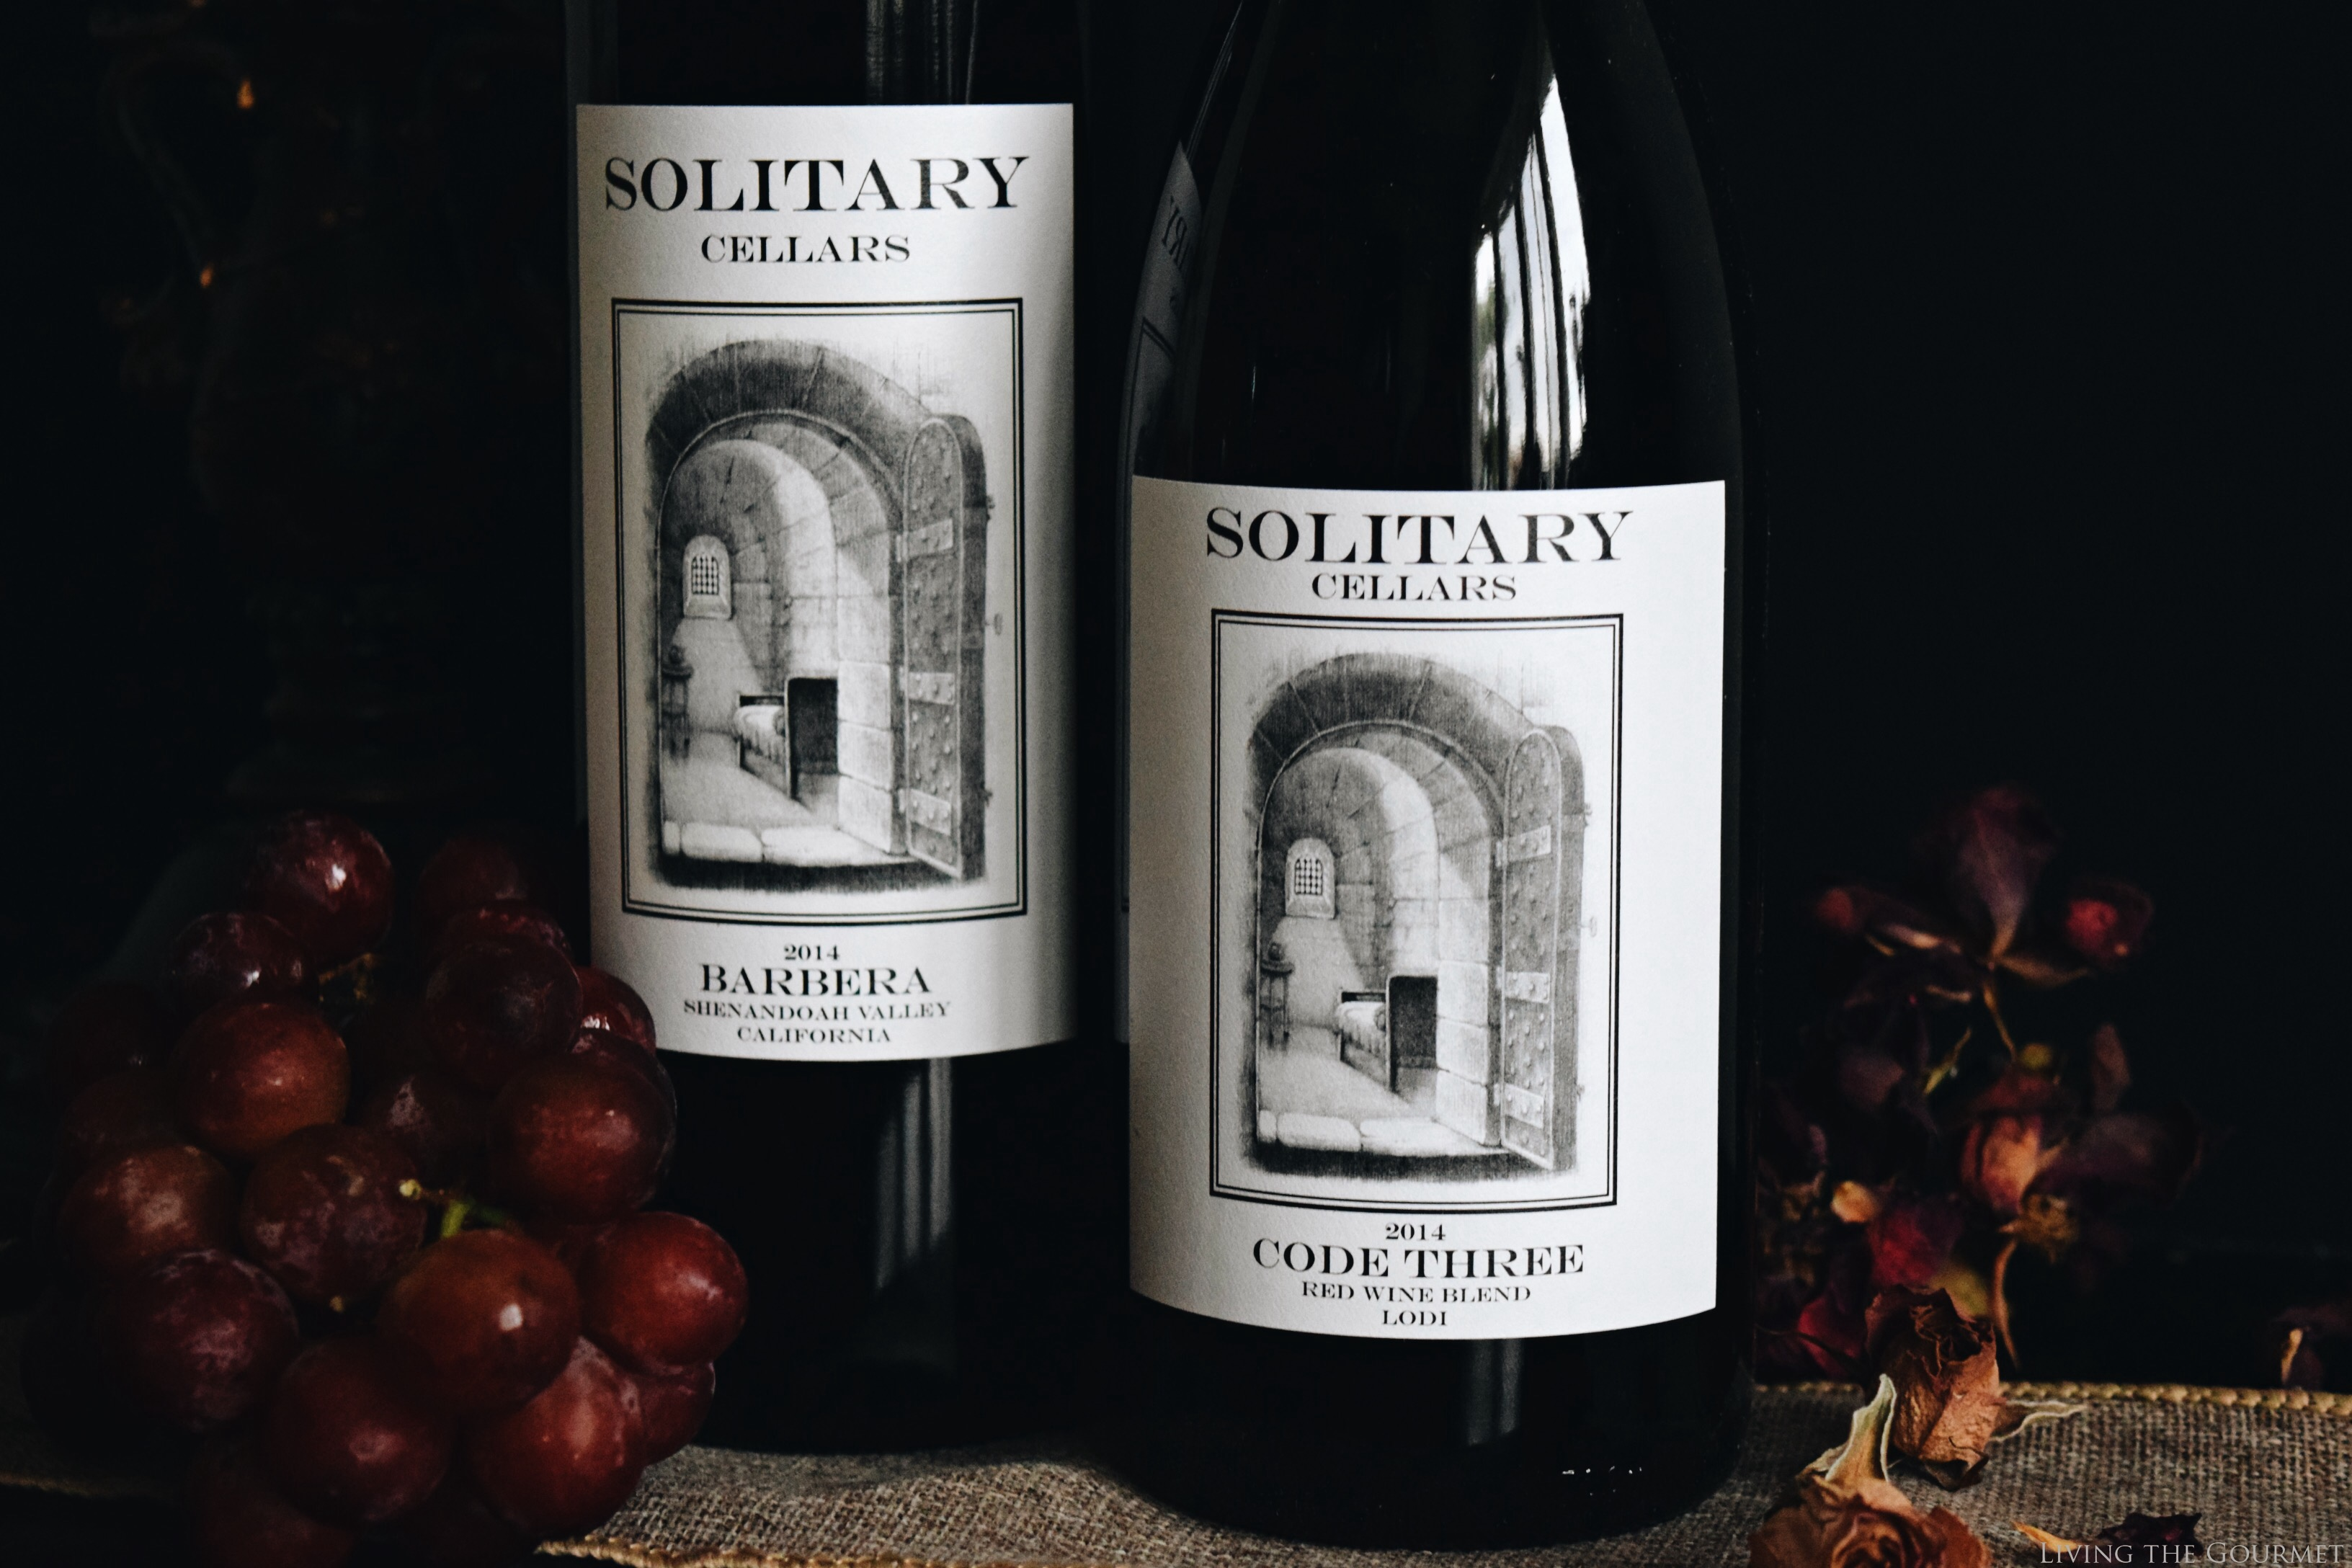 Living the Gourmet: Solitary Wines